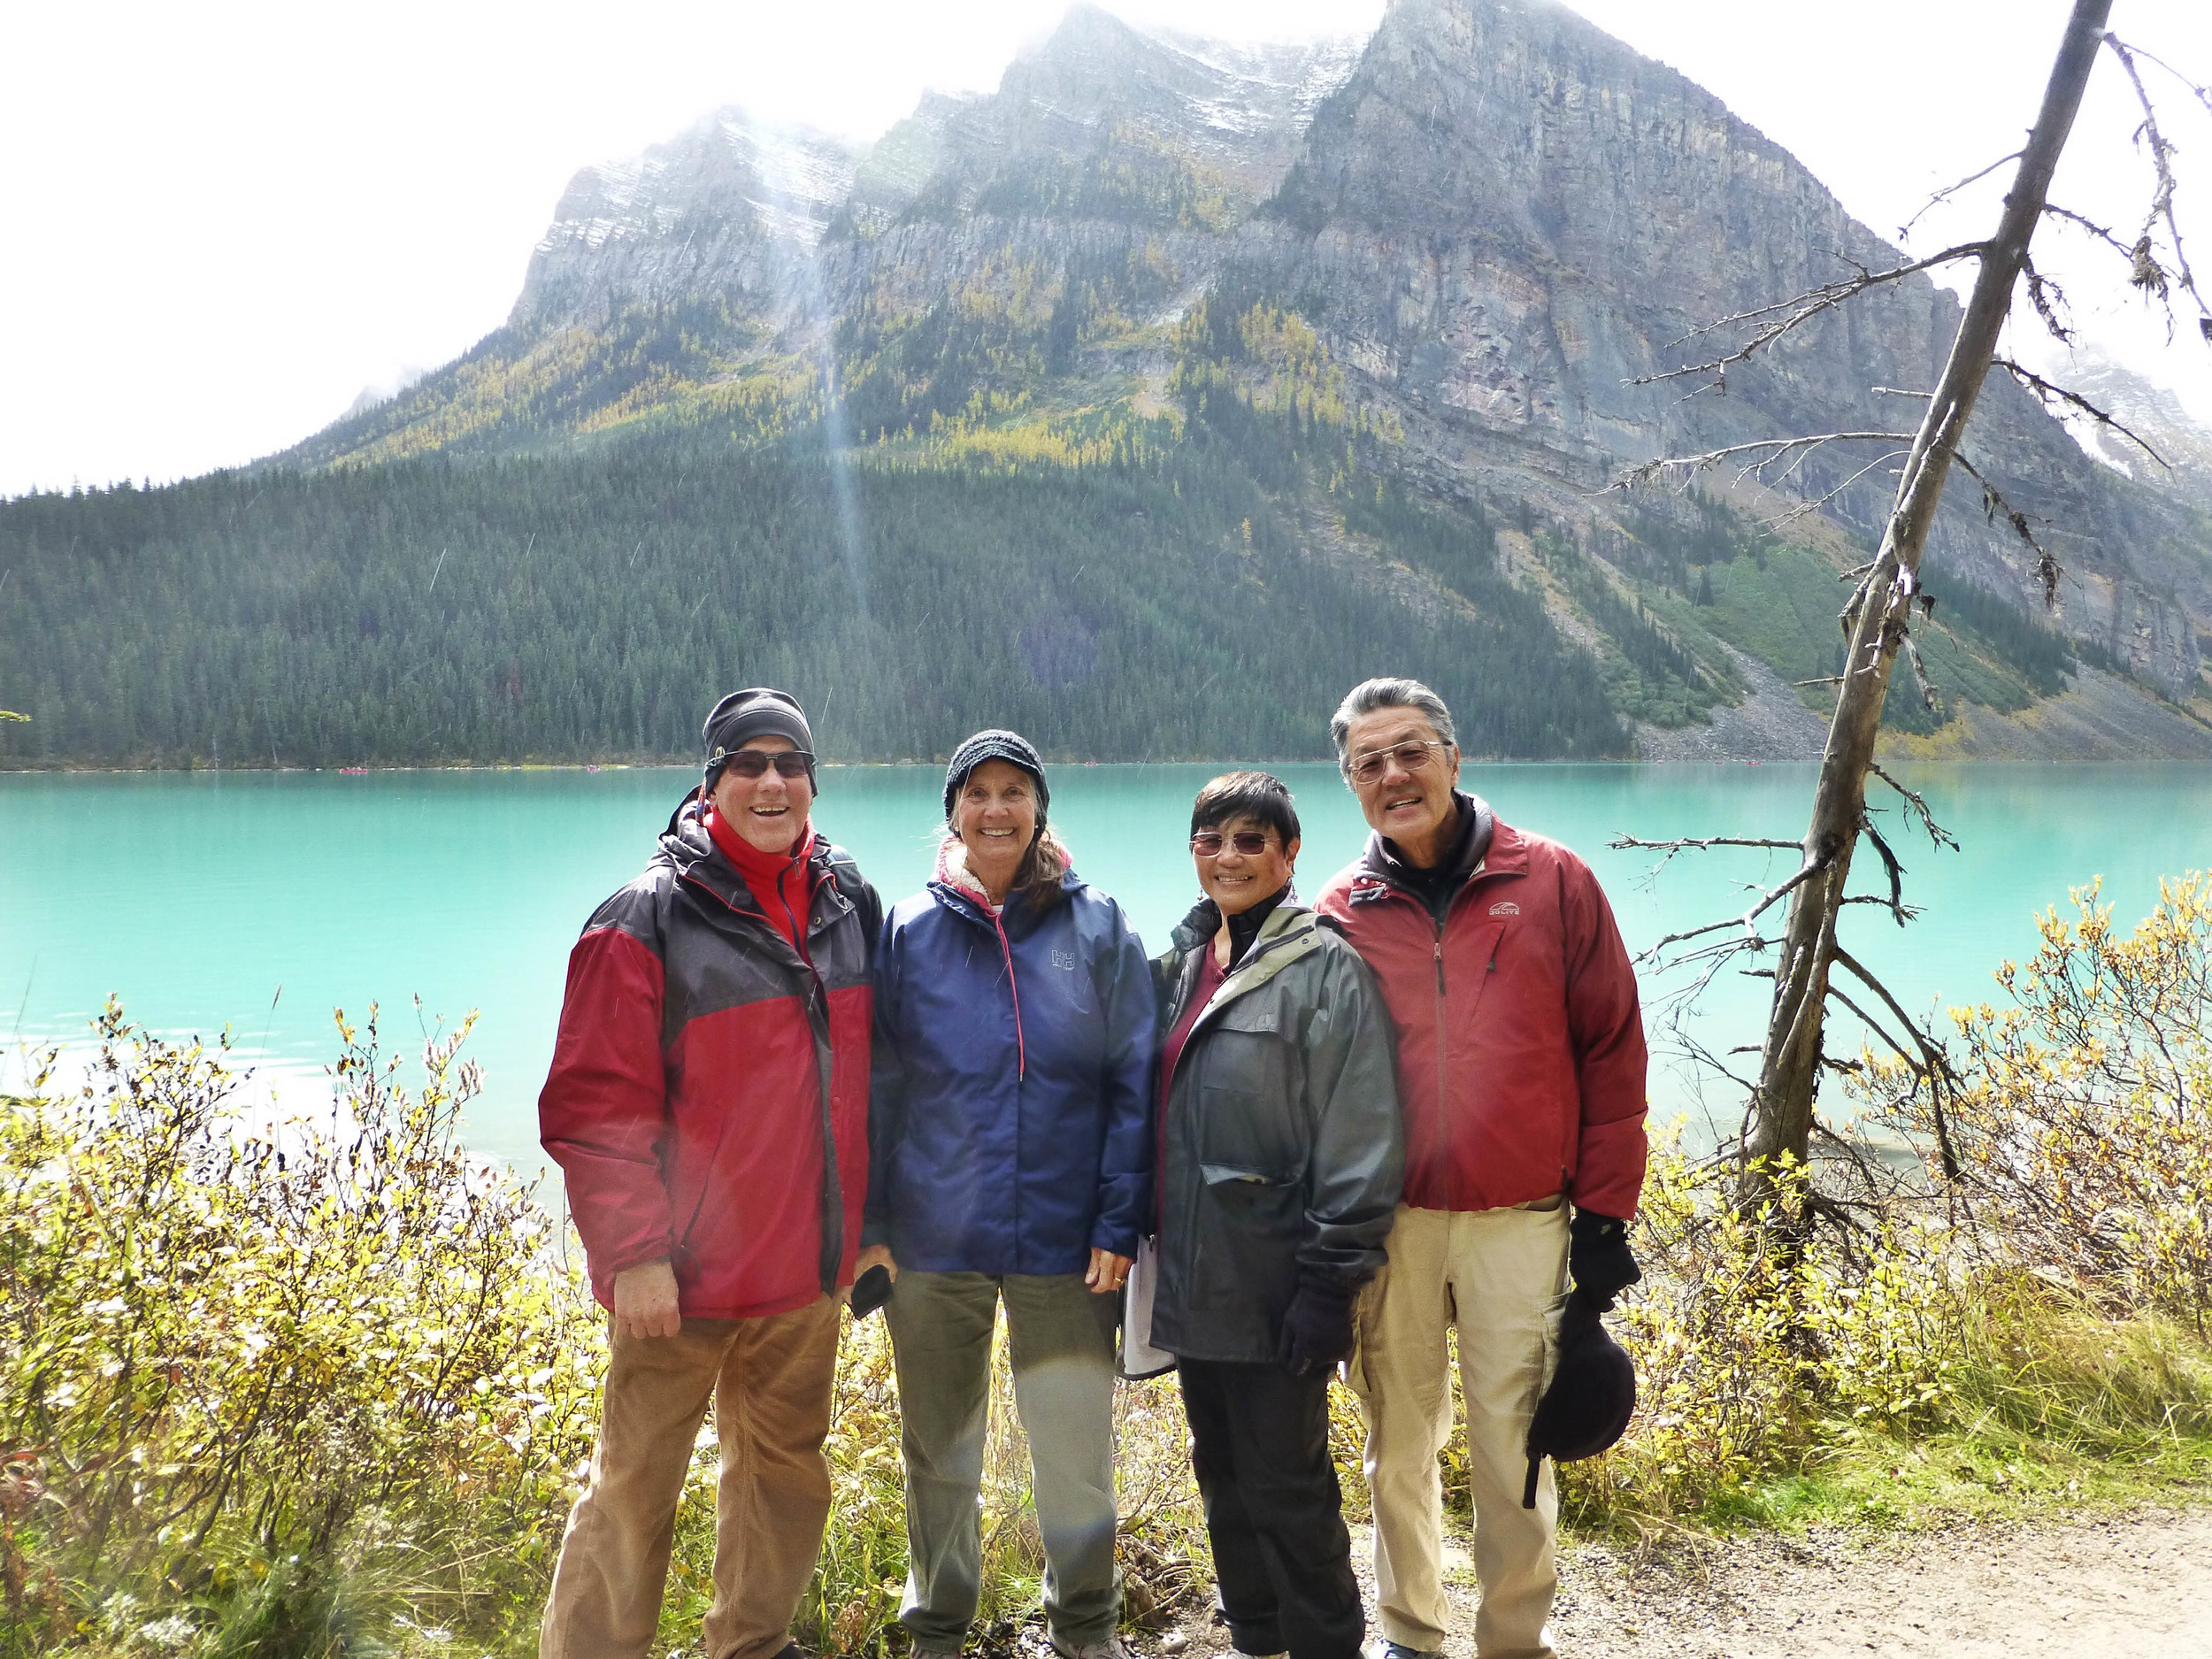 Four Musketeers at Lake Louise